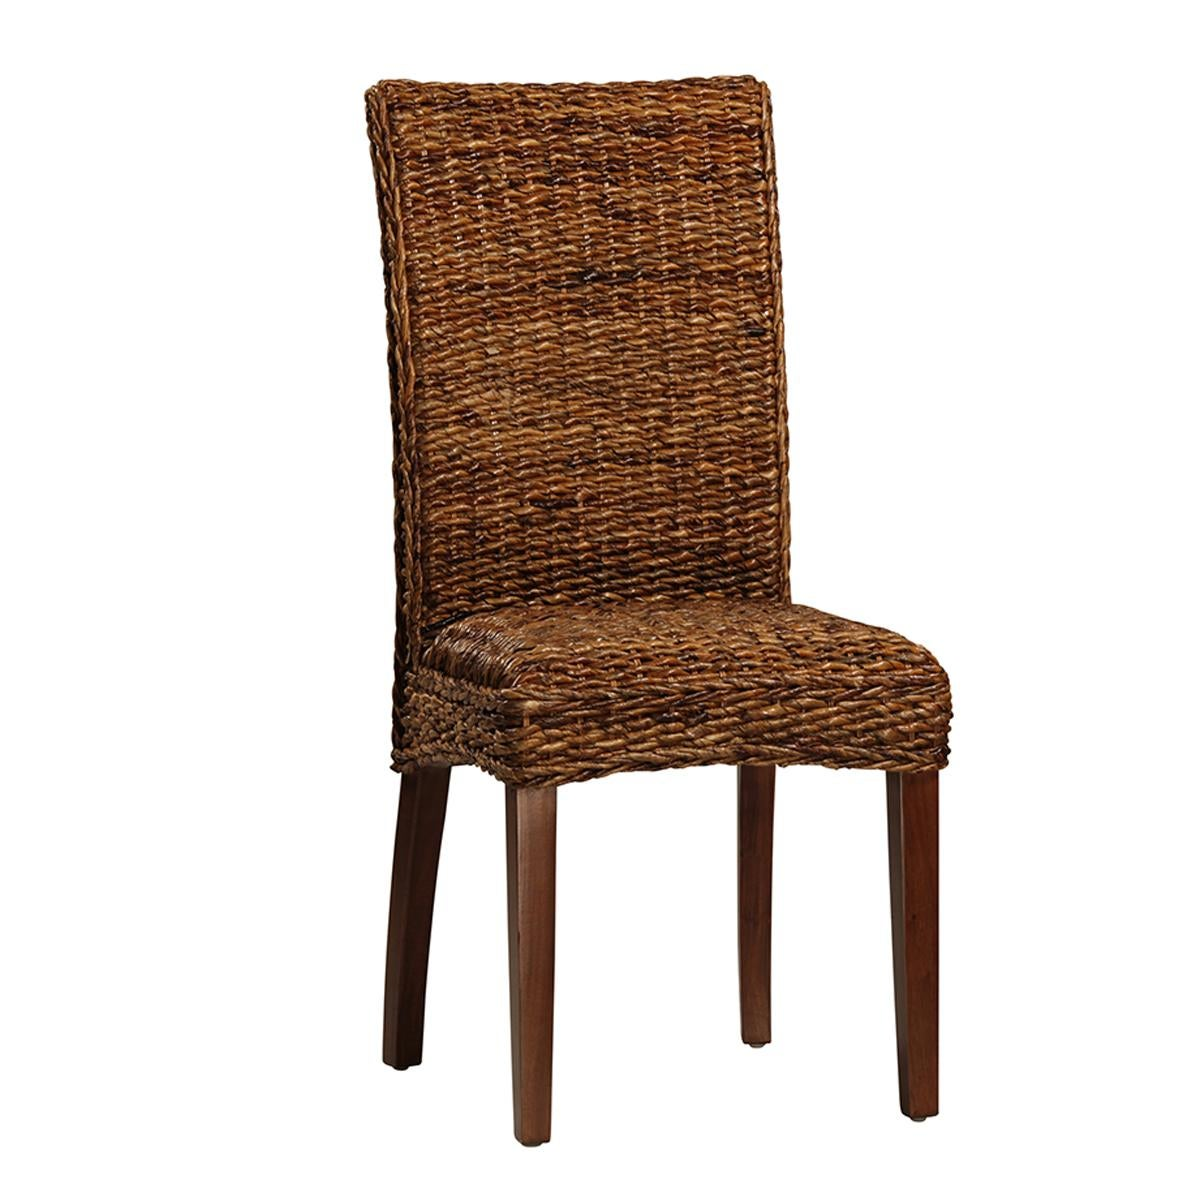 Woven banana leaf dining chair chairish